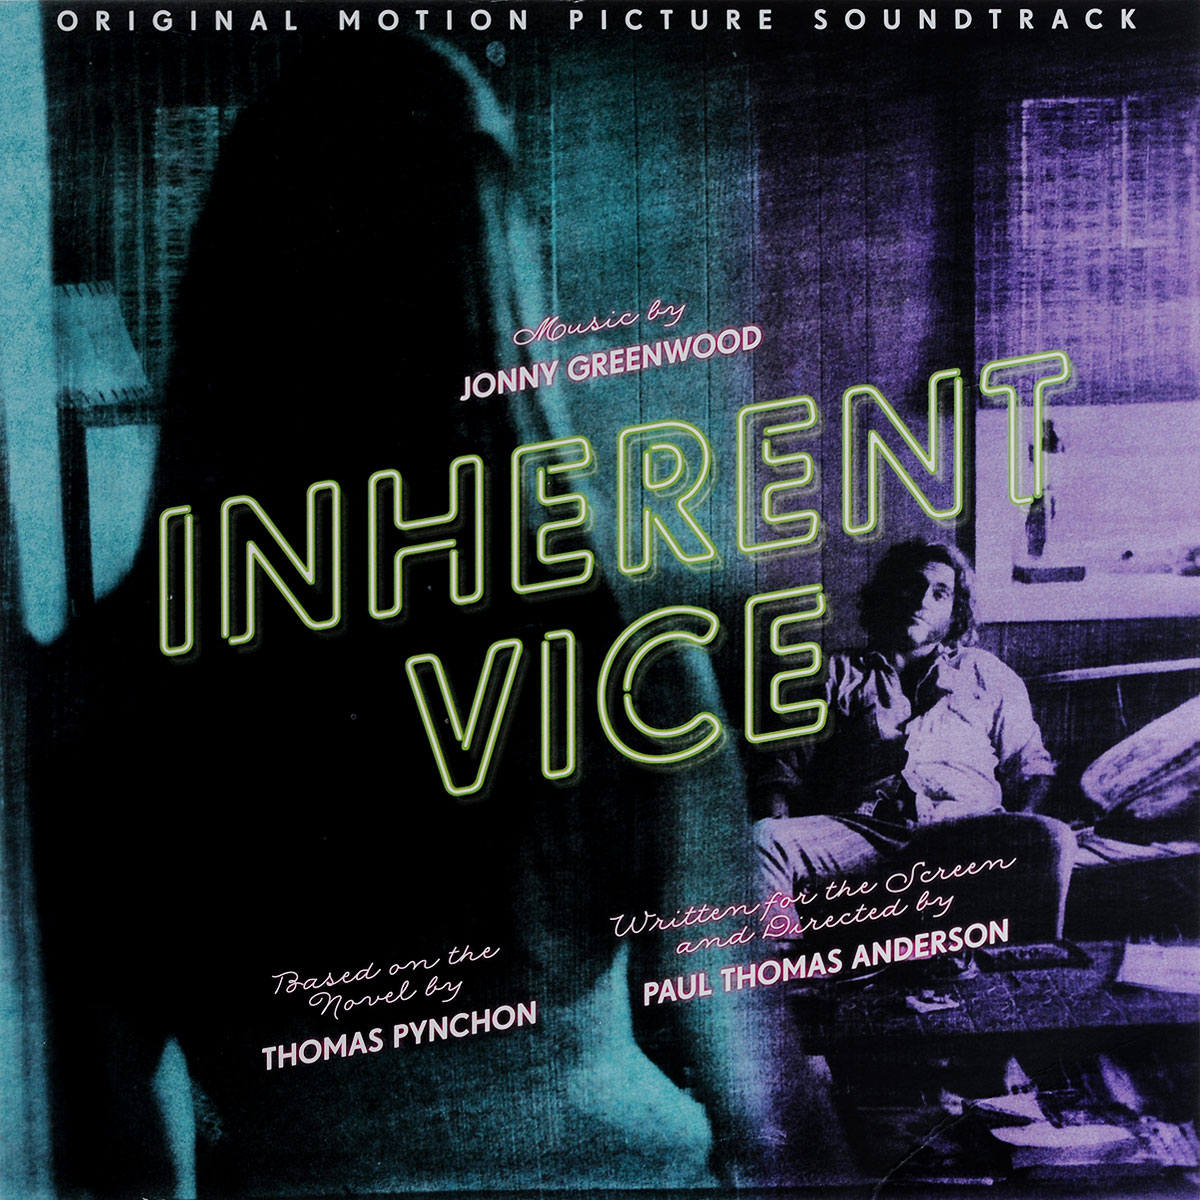 Jonny Greenwood. Inherent Vice. Original Motion Picture Soundtrack (2 LP) lp a640c